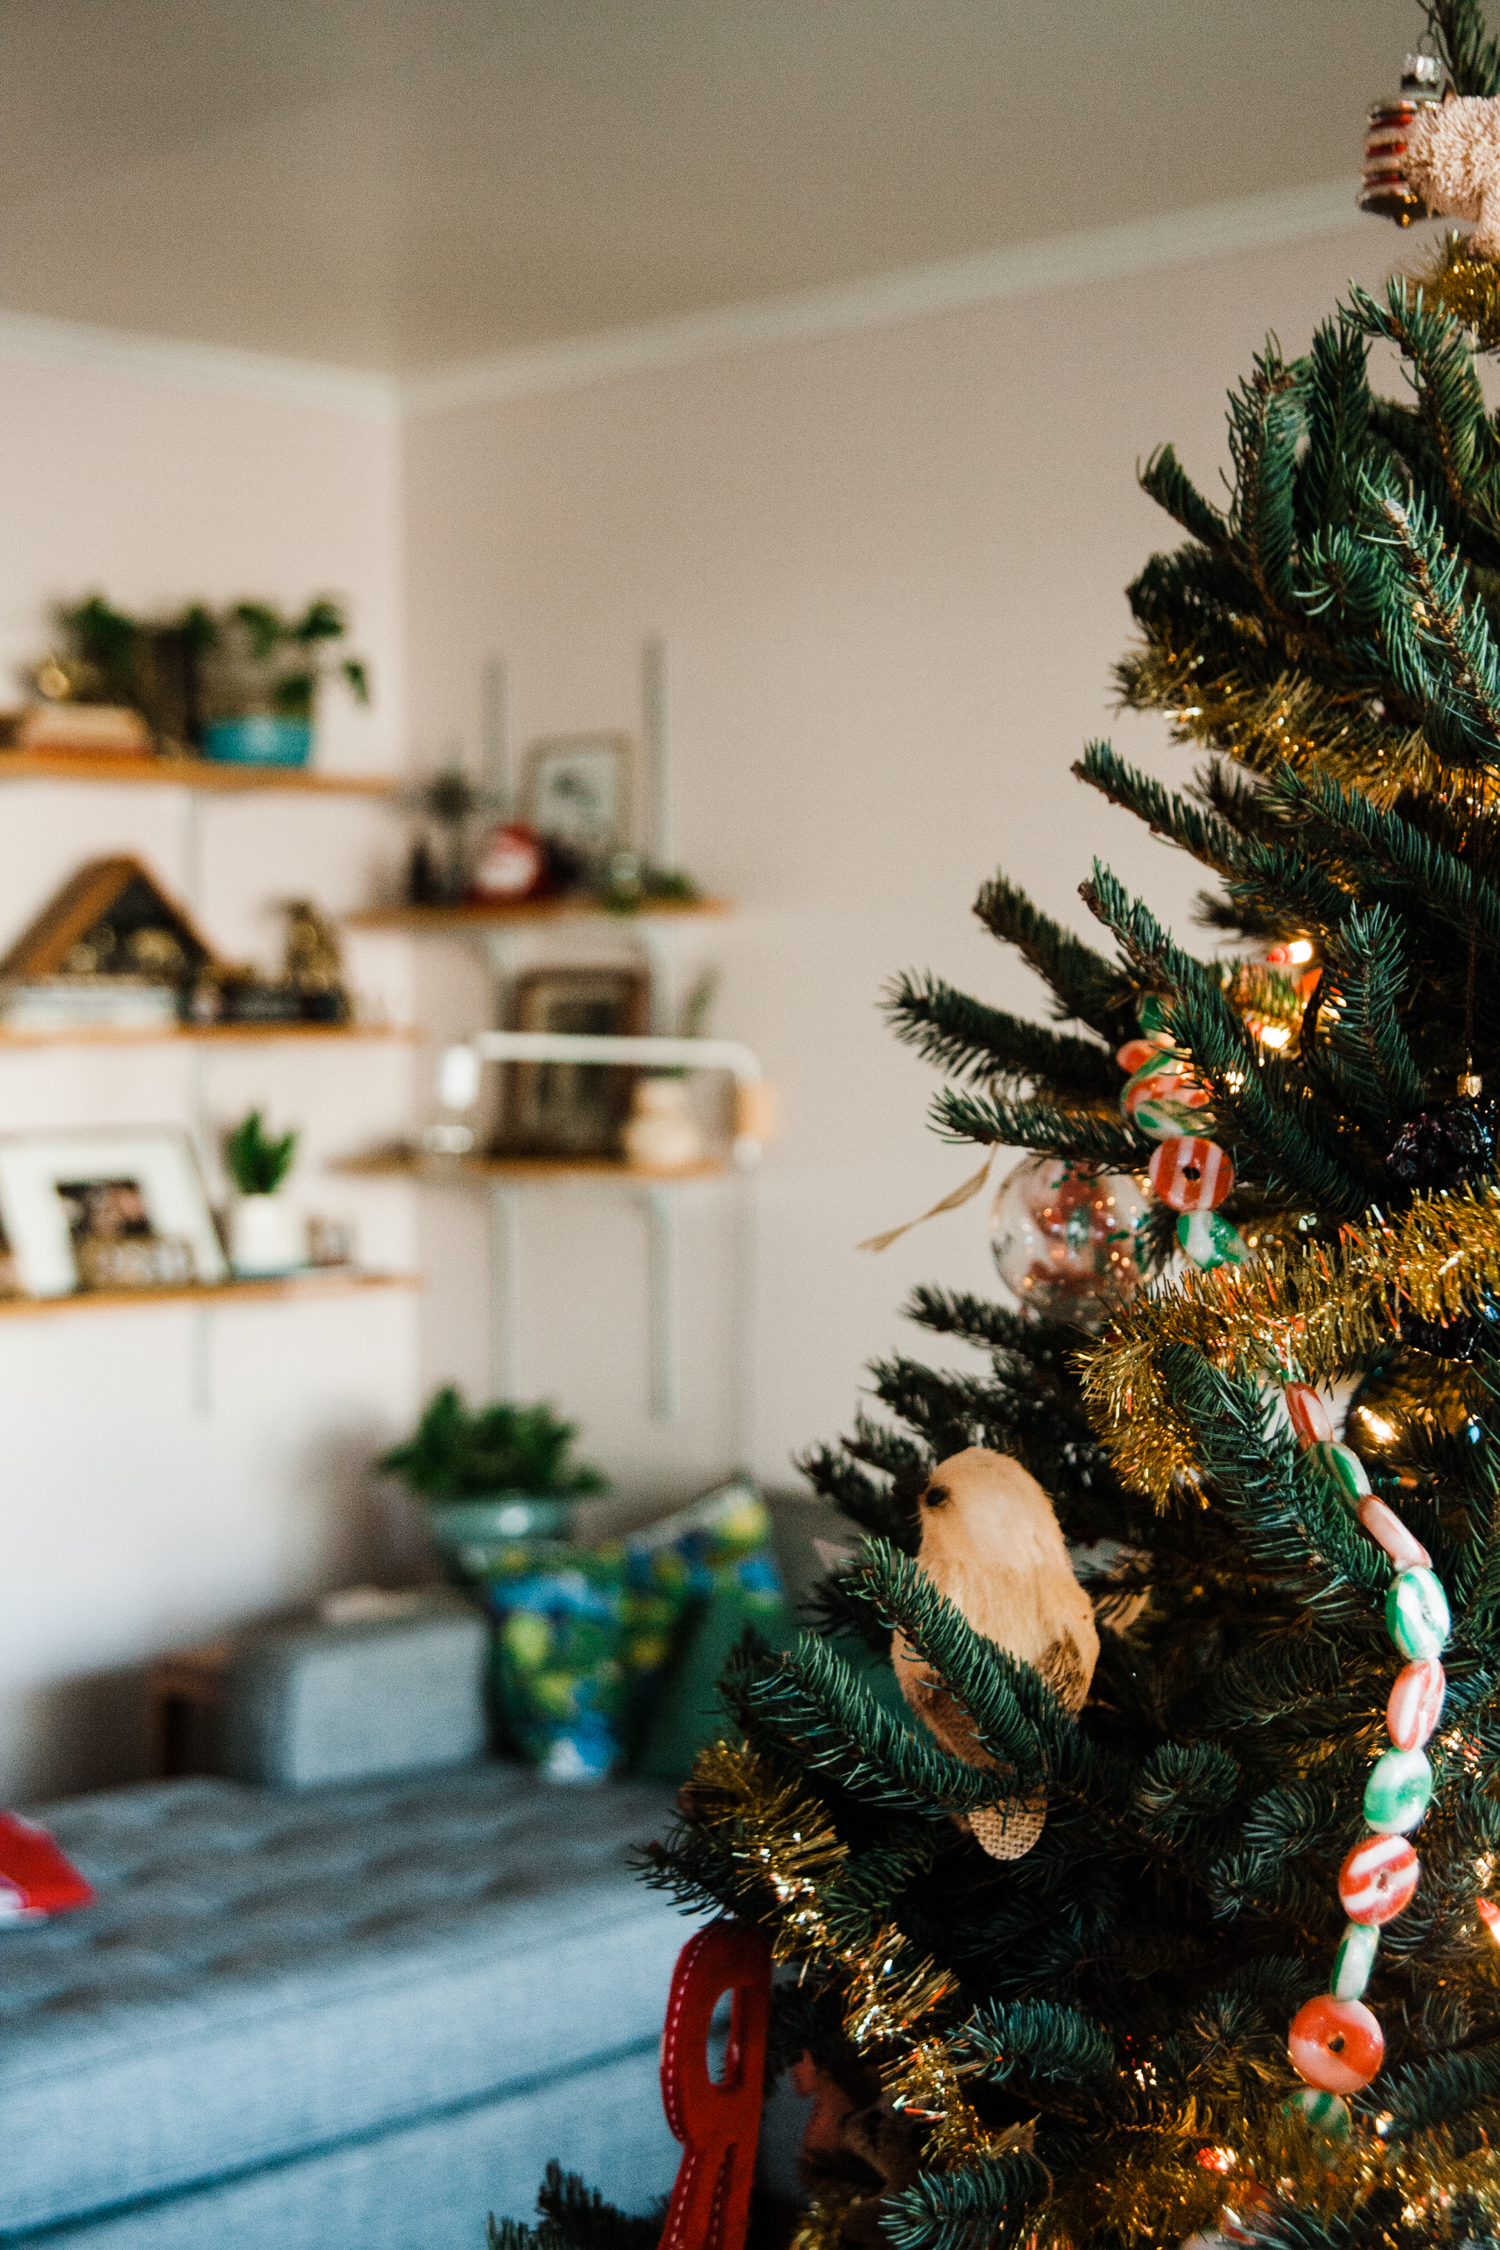 daly holiday home tour-6.jpg